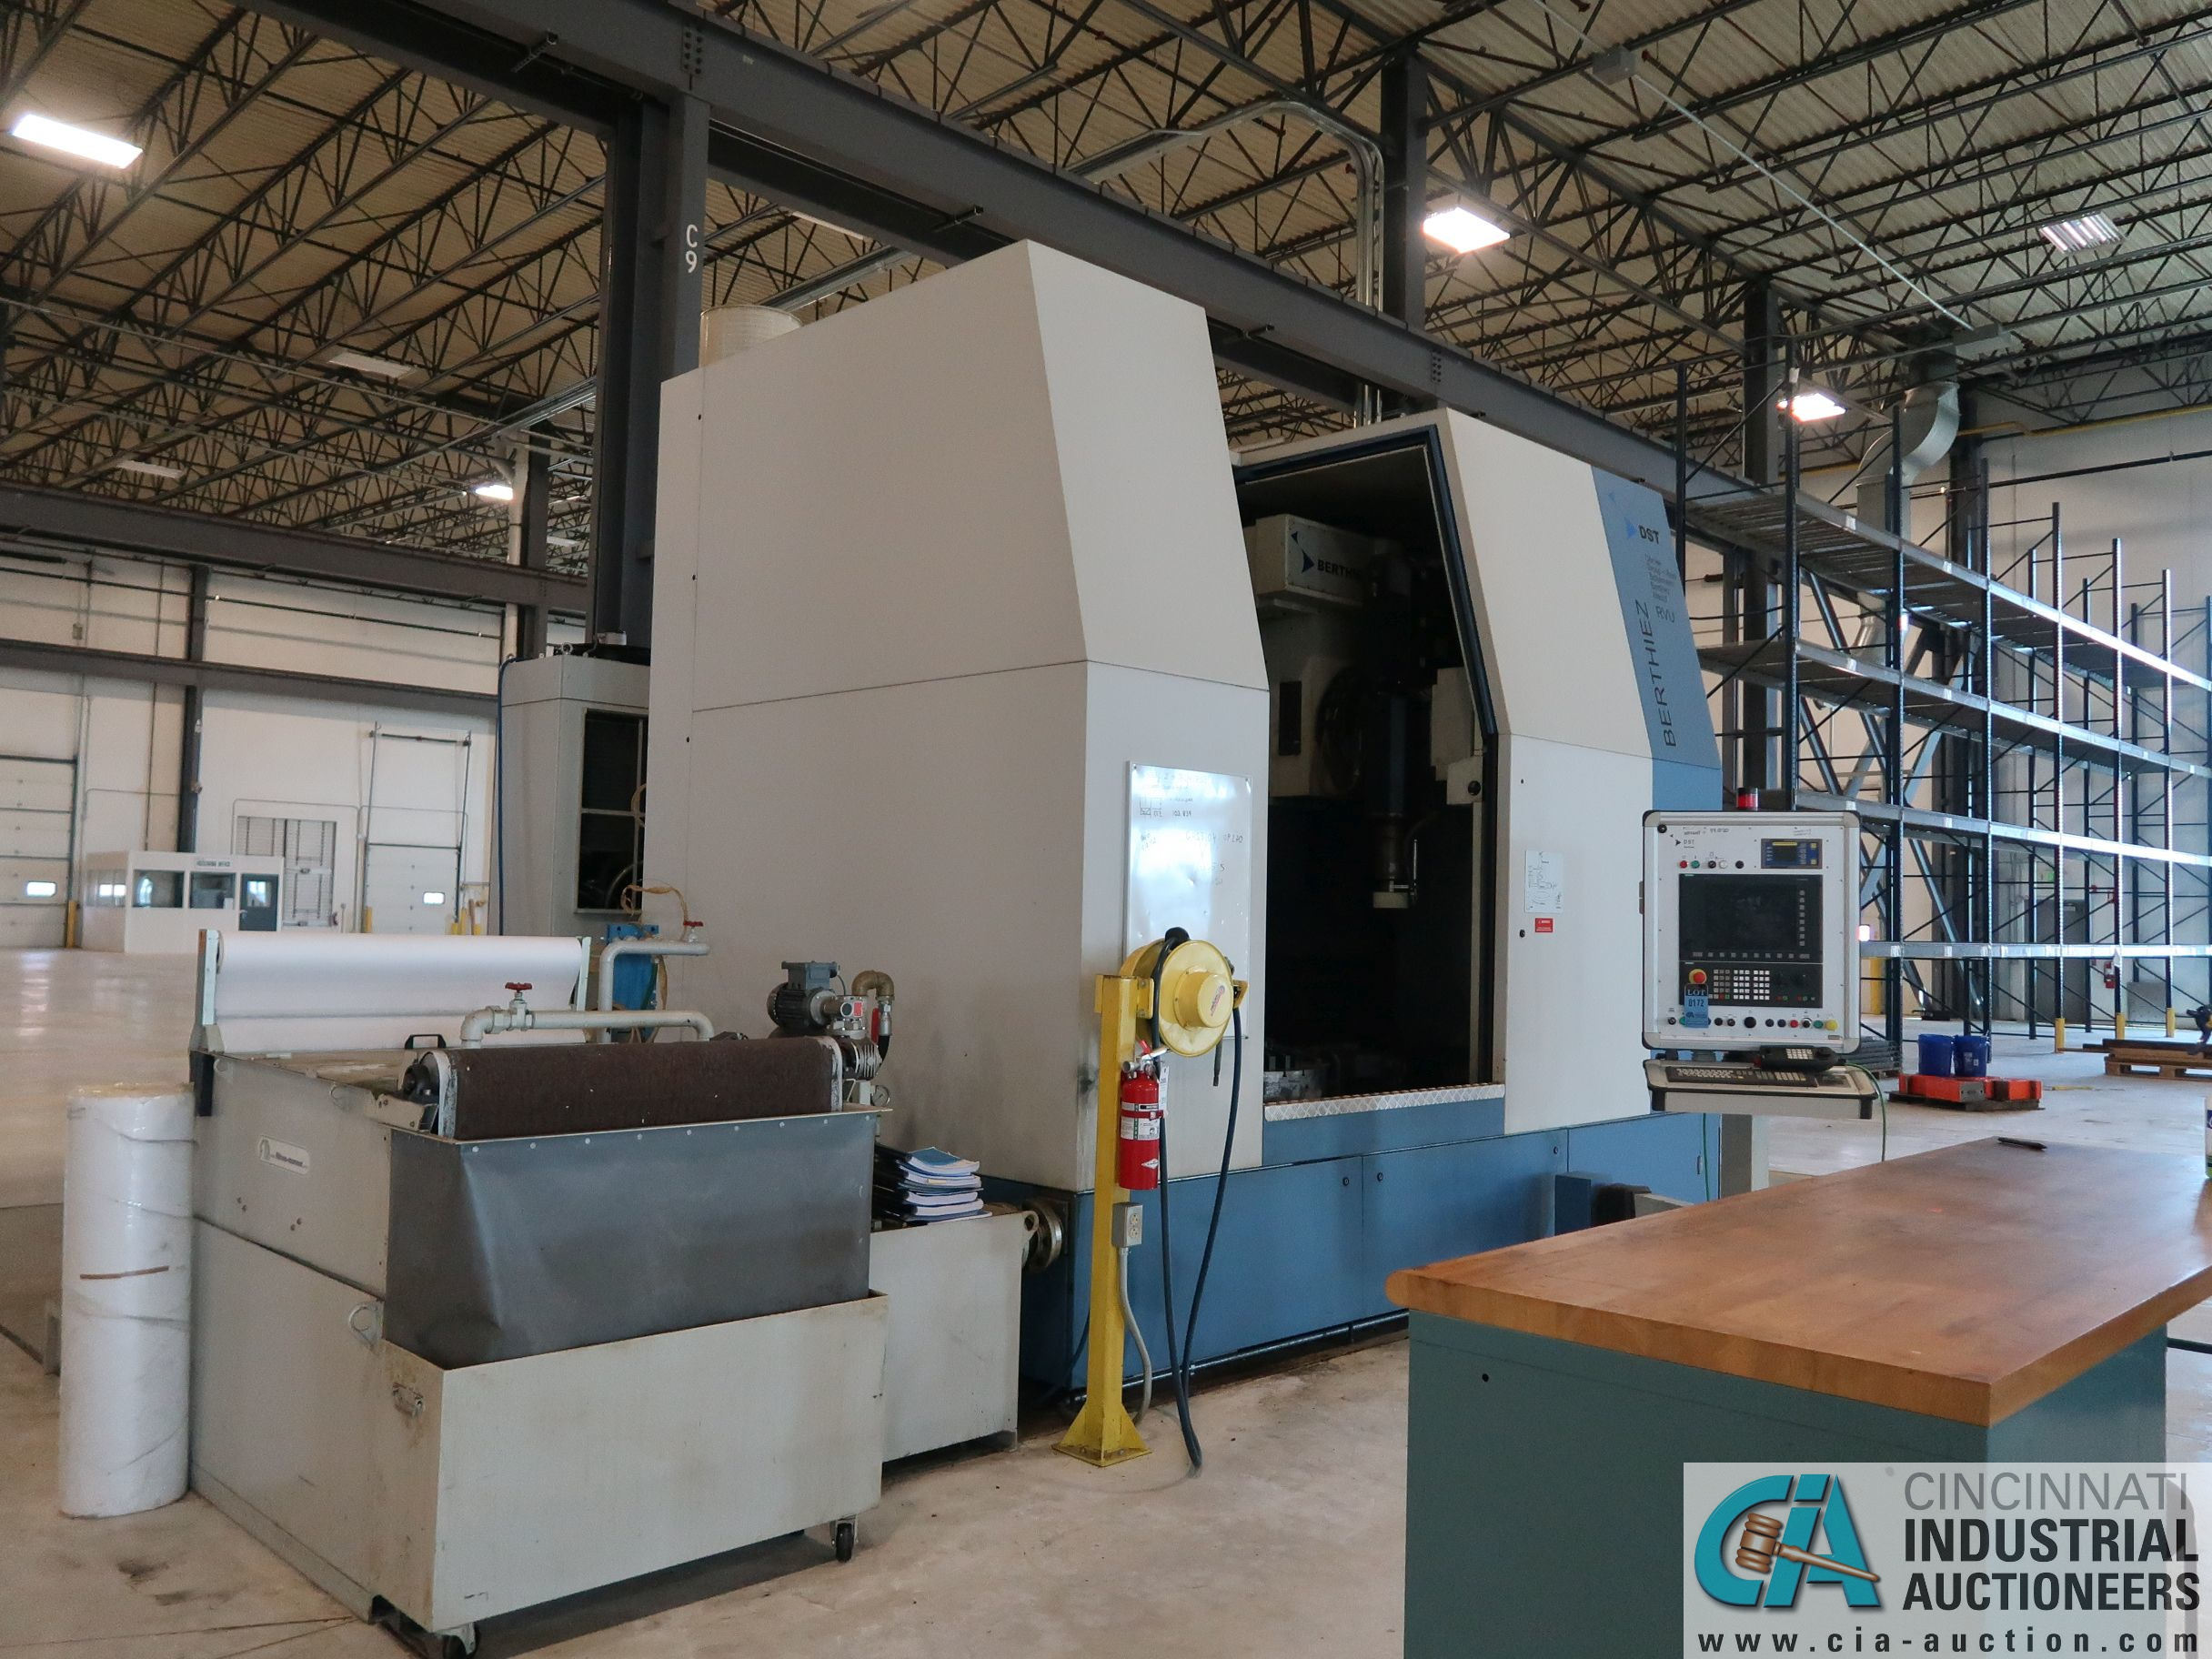 BERTHIEZ MODEL RVU 900/80 ID/OD, WITH TURNING, VERTICAL CNC GRINDER; S/N 4219, 84OD SIEMENS CONTROL - Image 15 of 33